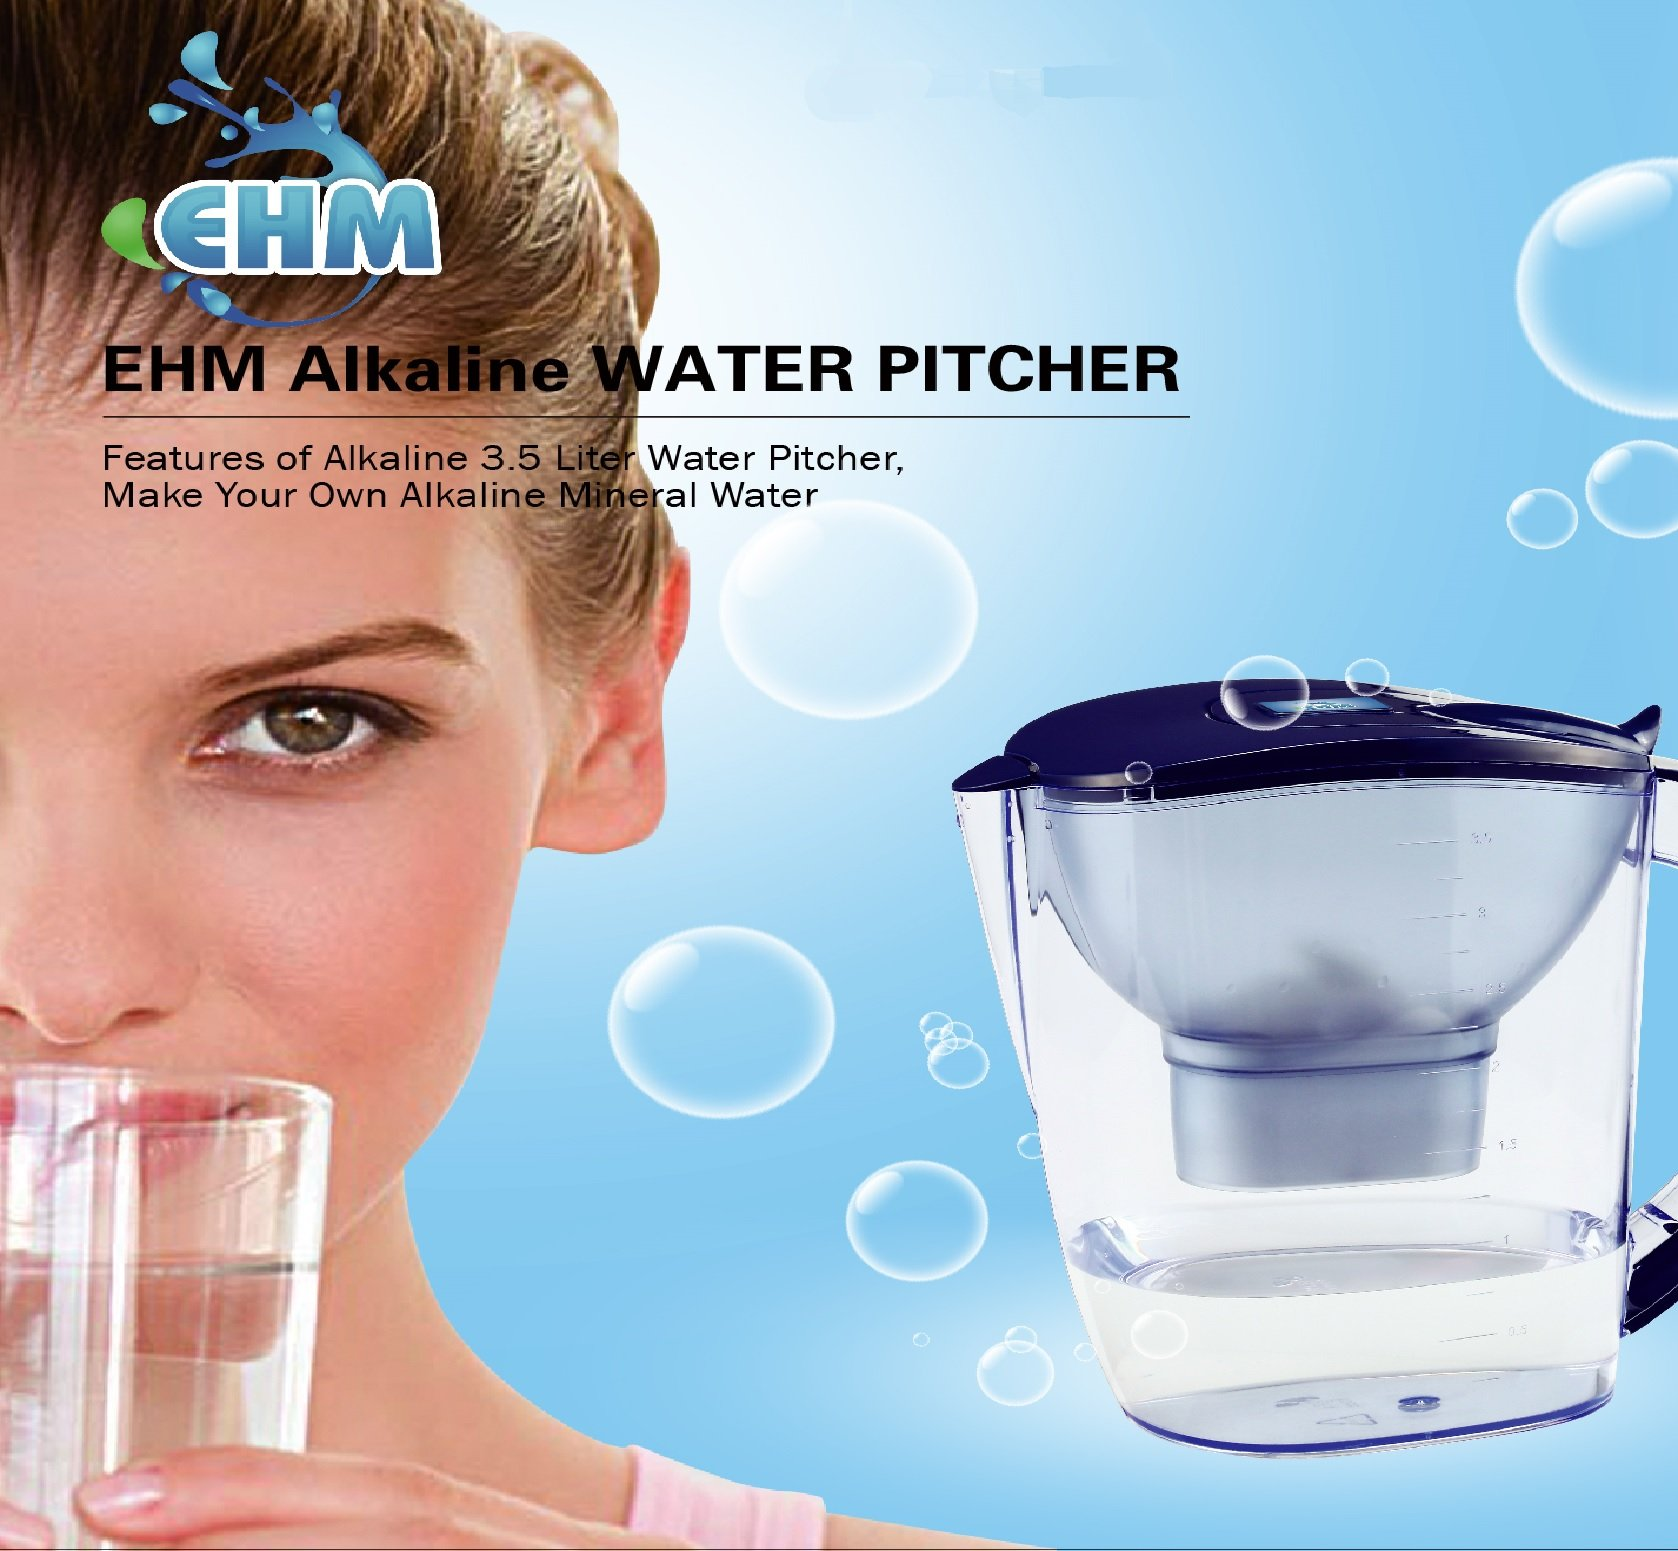 EHM ULTRA Premium Alkaline Water Pitcher - 3.5L Pure Healthy Water Ionizer With Activated Carbon Filter - Healthy, Clean & Toxin-Free Mineralized Alkaline Water In Minutes - PH 8.5 - 9.5 - 2018 by EHM (Image #2)